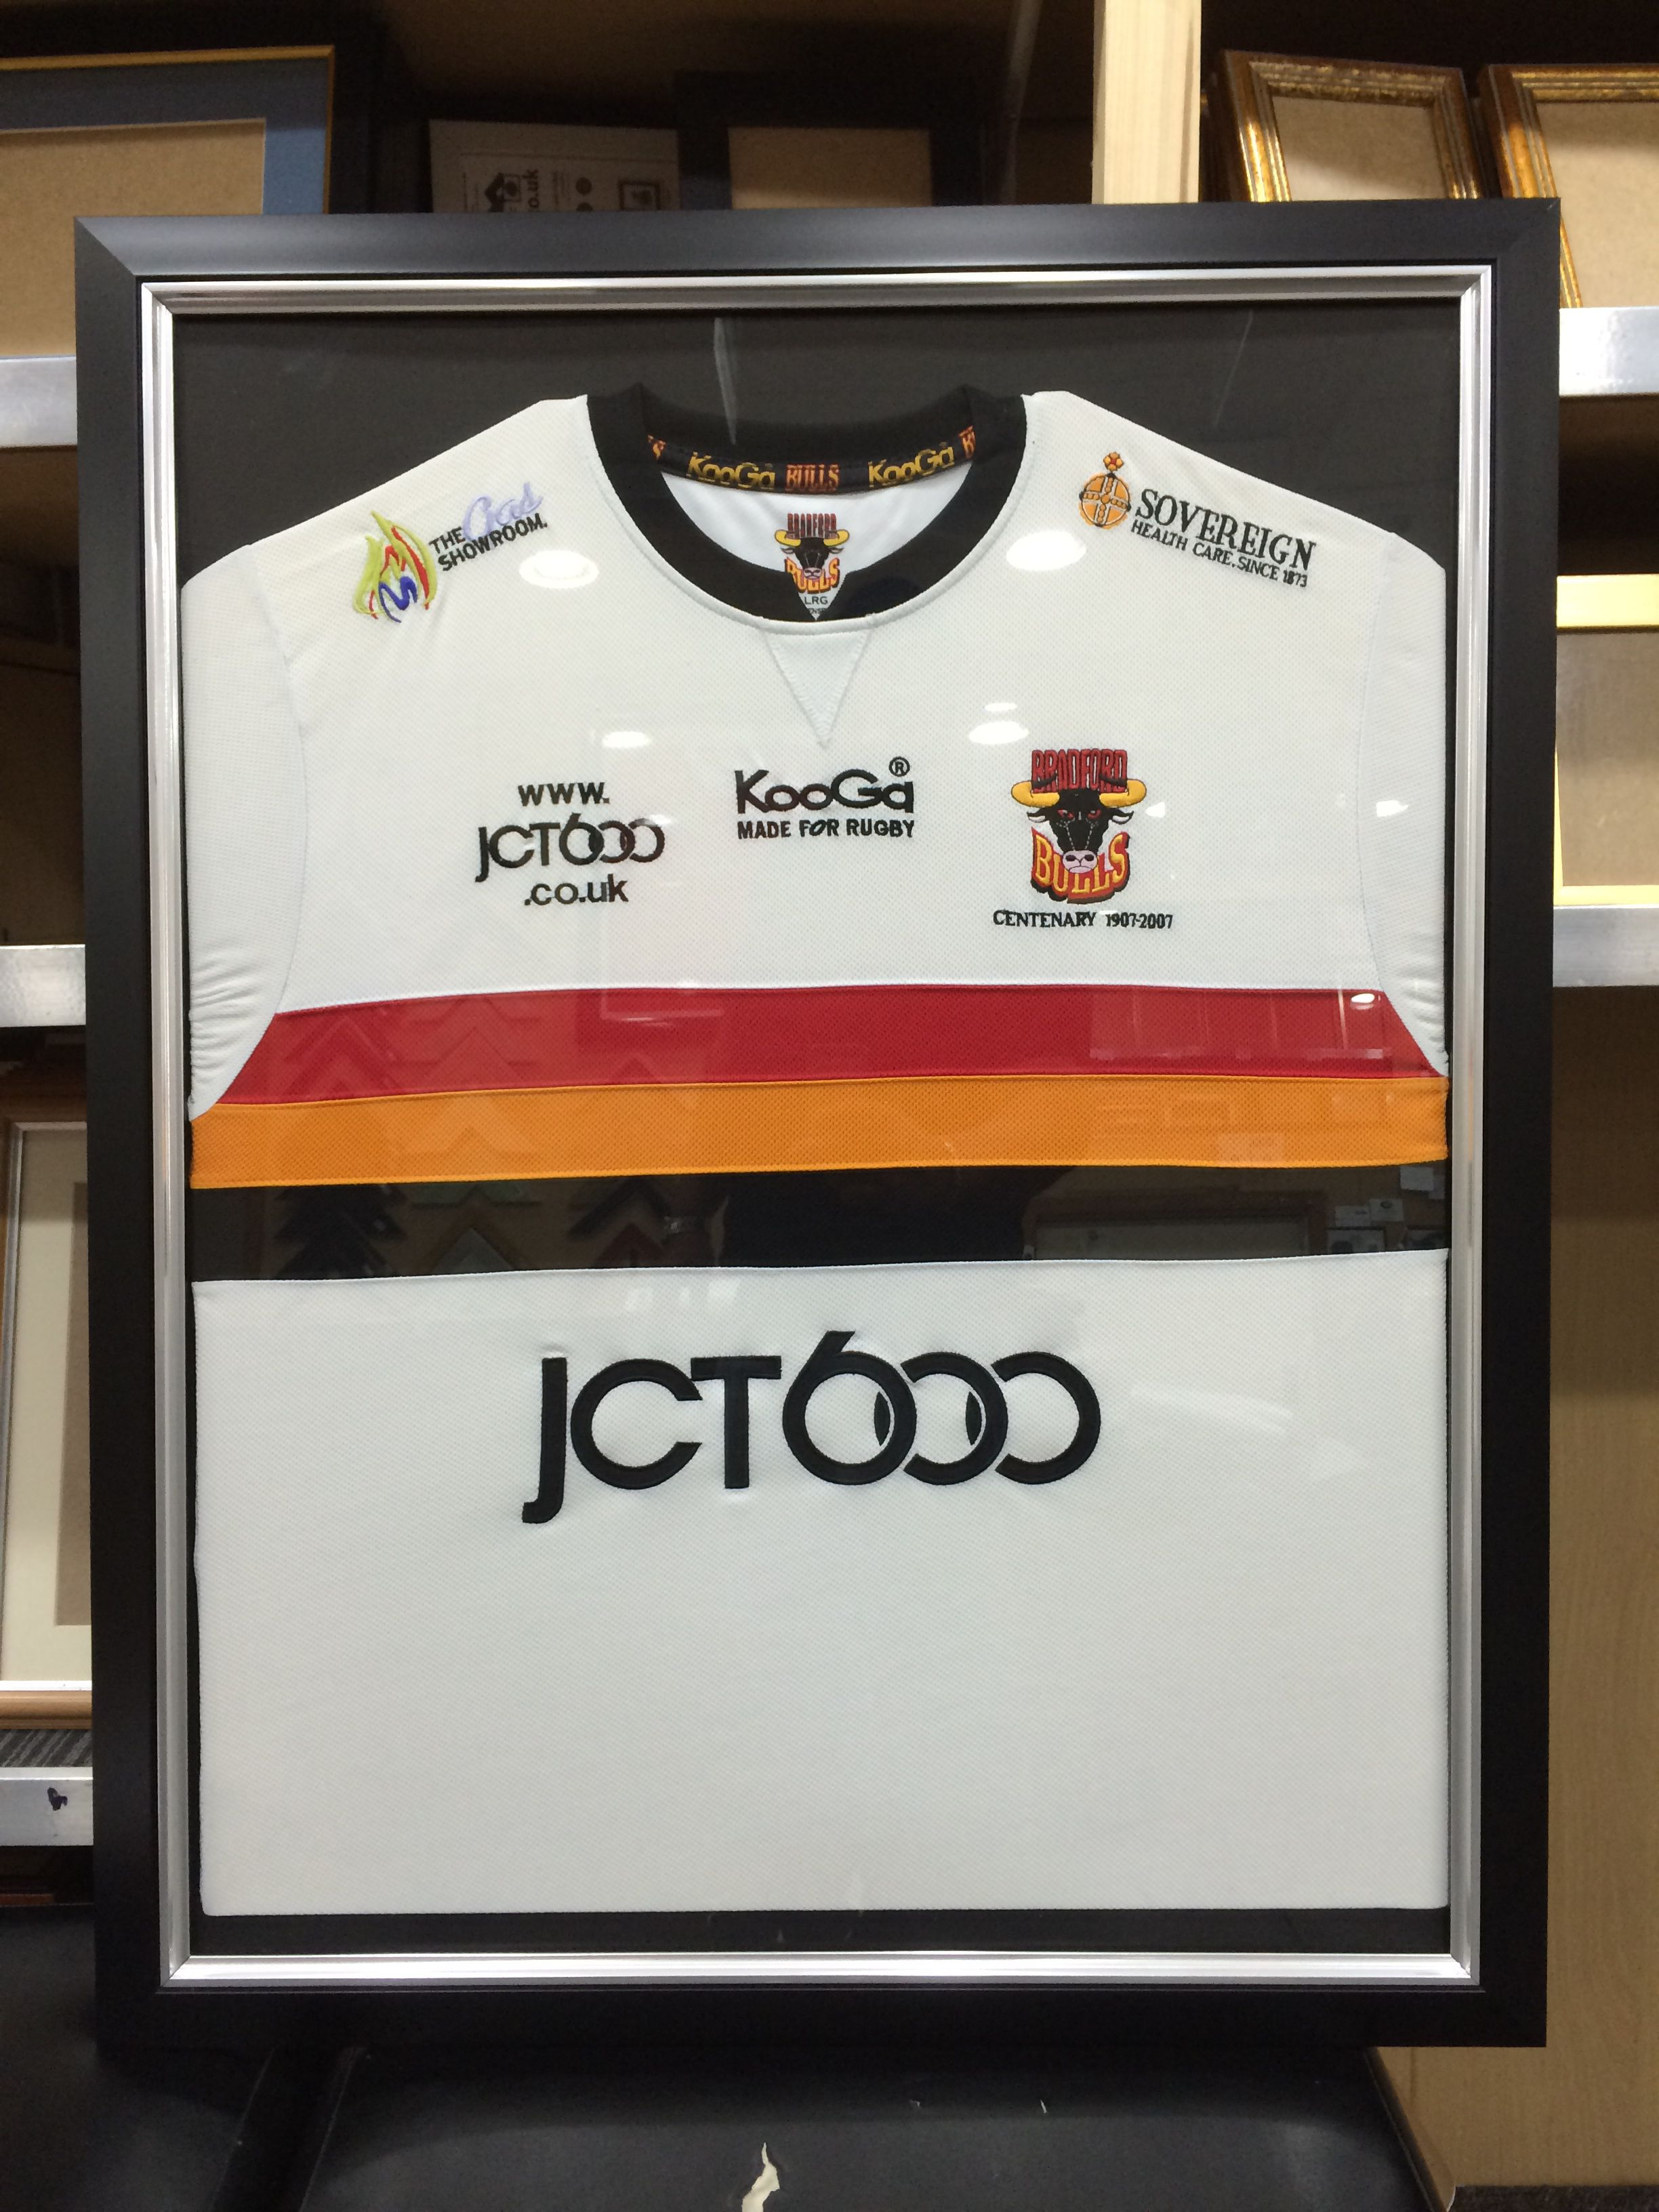 171b9d36318 Do you have a favourite Jersey you would like frame? click on image to get